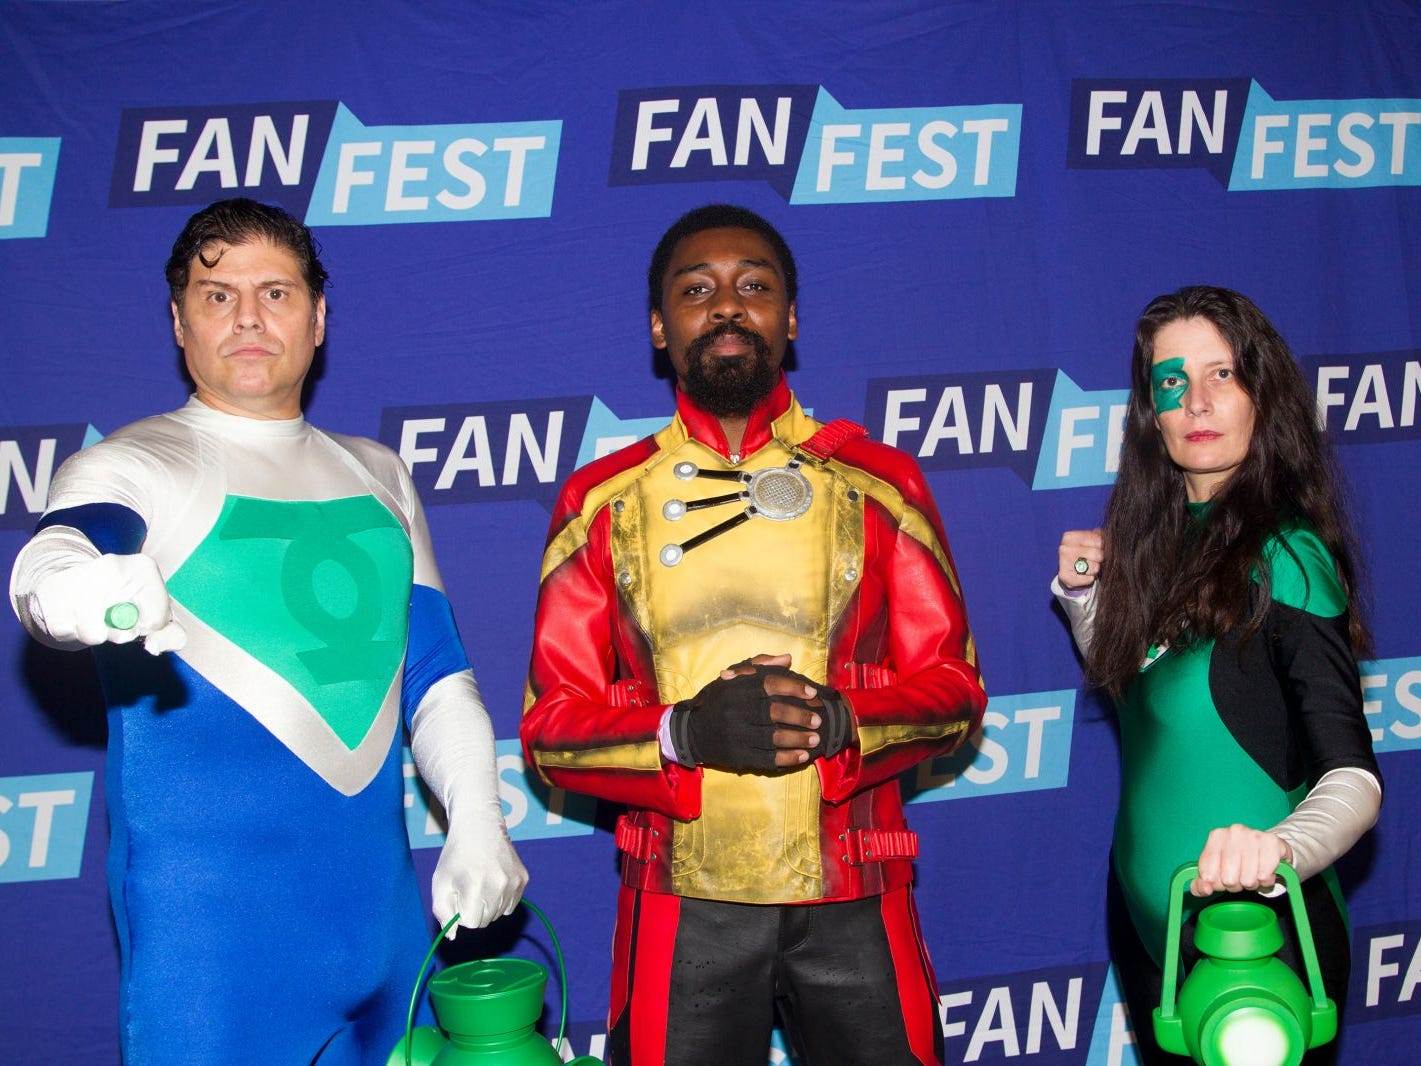 Justin, Jordan, Shiela. The 2018 Heroes and Villains Fan Fest took place at the New Jersey Convention & Expo Center. 09/09/2018